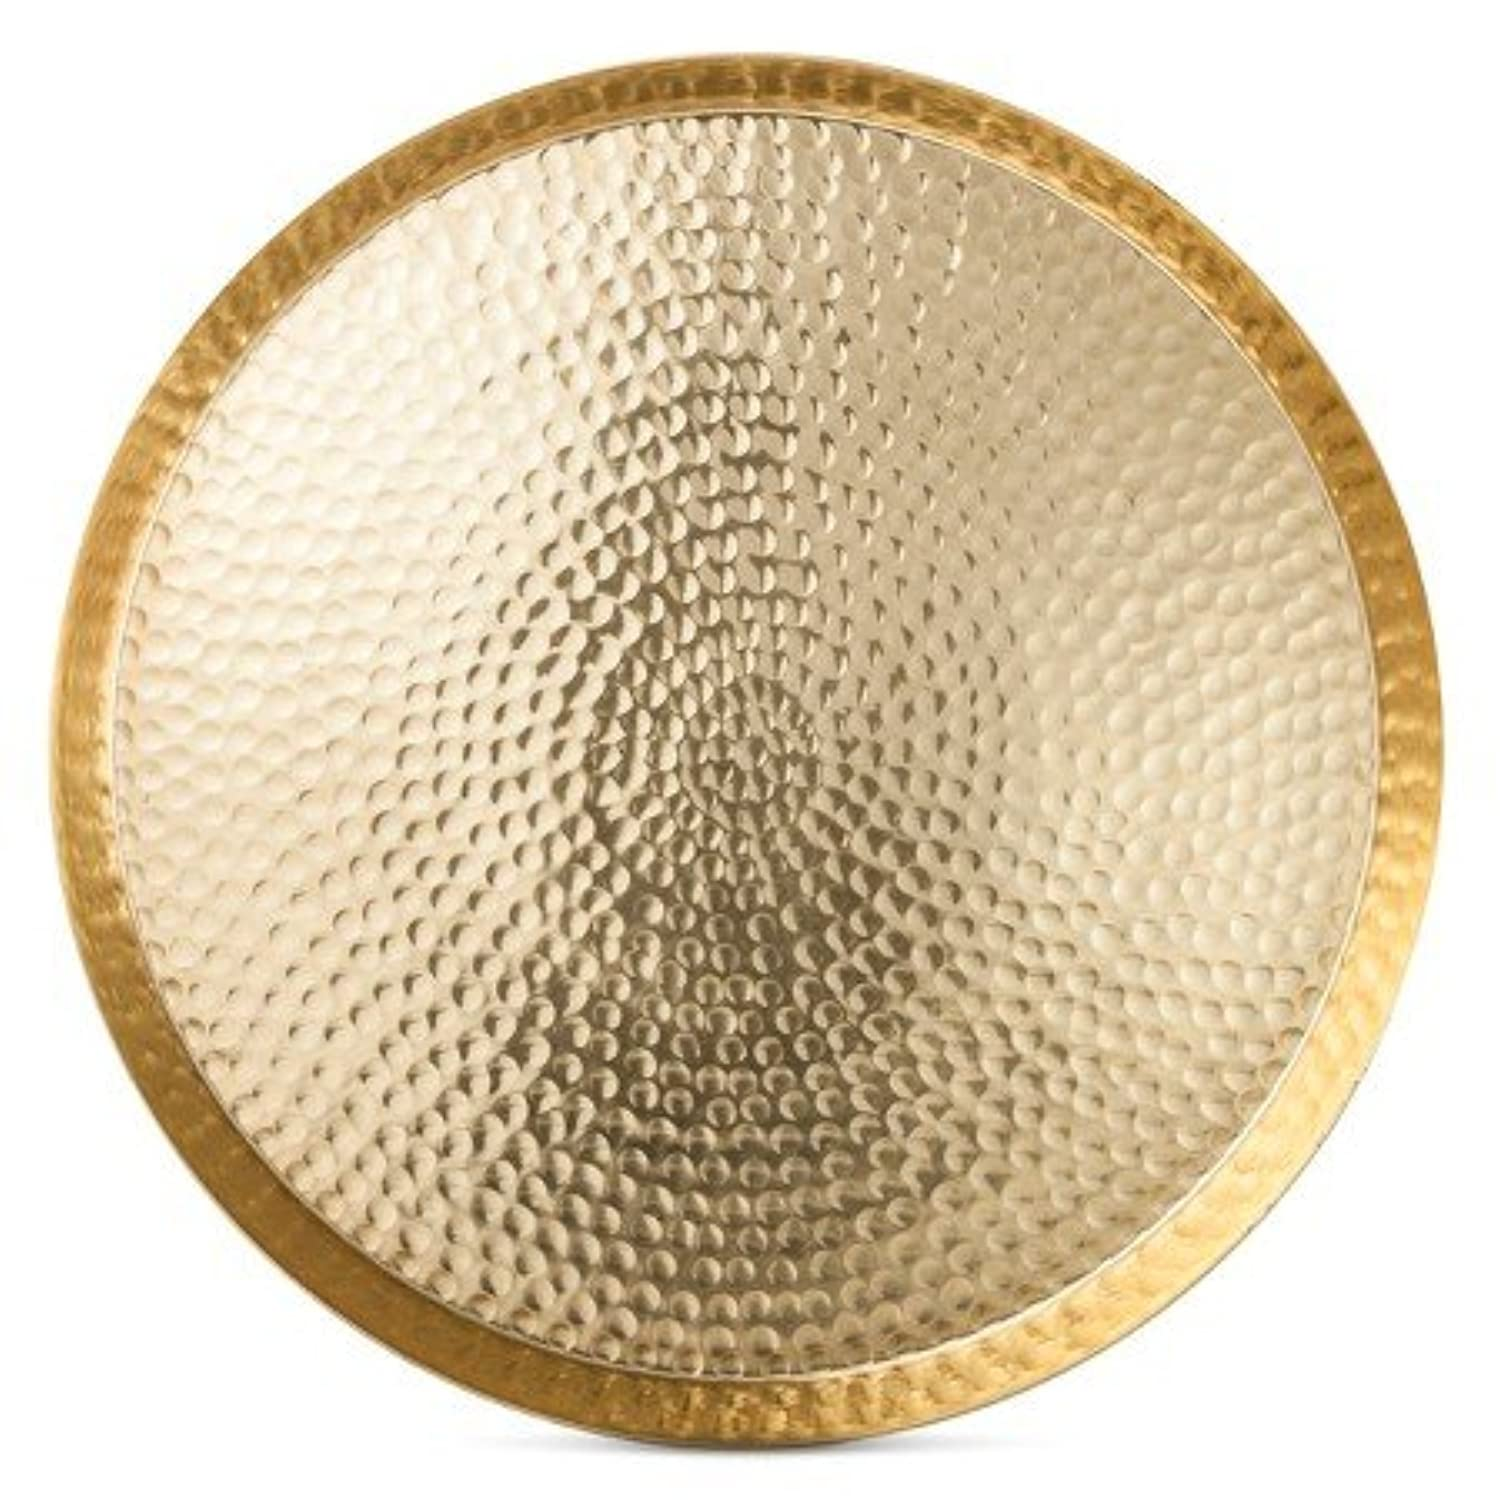 Hammered Coffee Table Tray: Hammered Round Serving Tray 17.5in Aluminum/Gold Finish